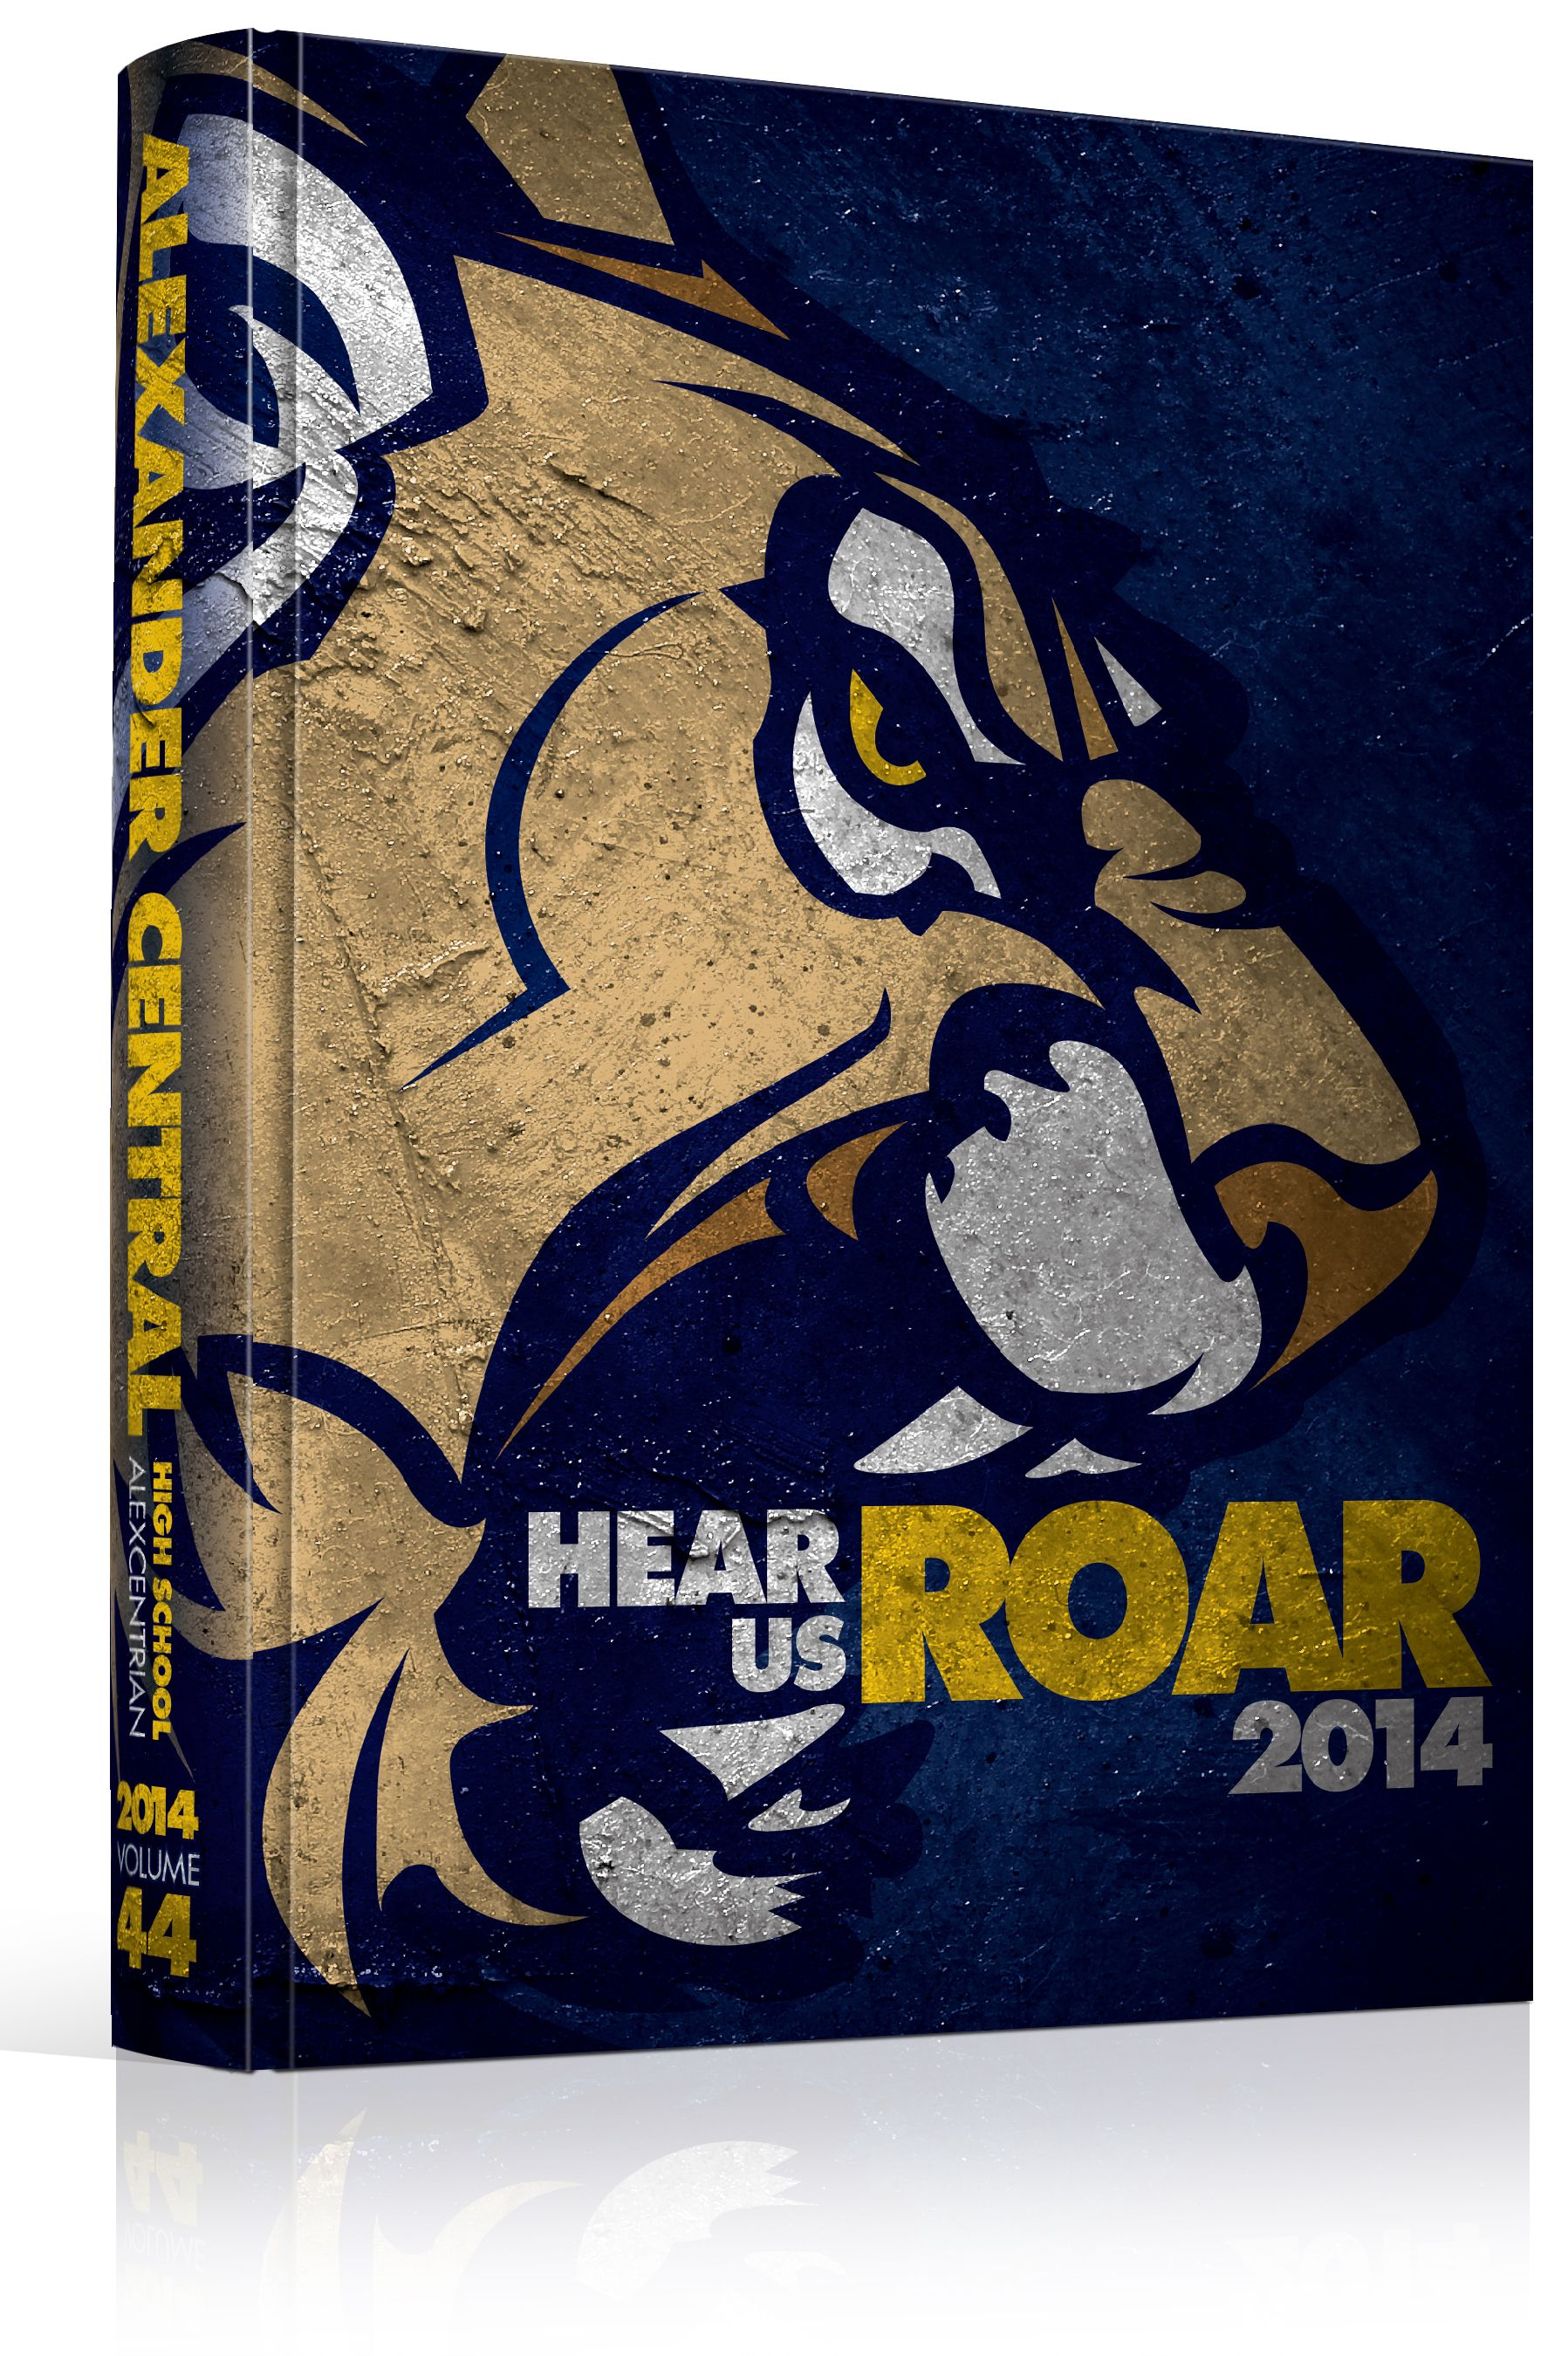 High School Book Cover : Yearbook cover alexander central high school quot hear us